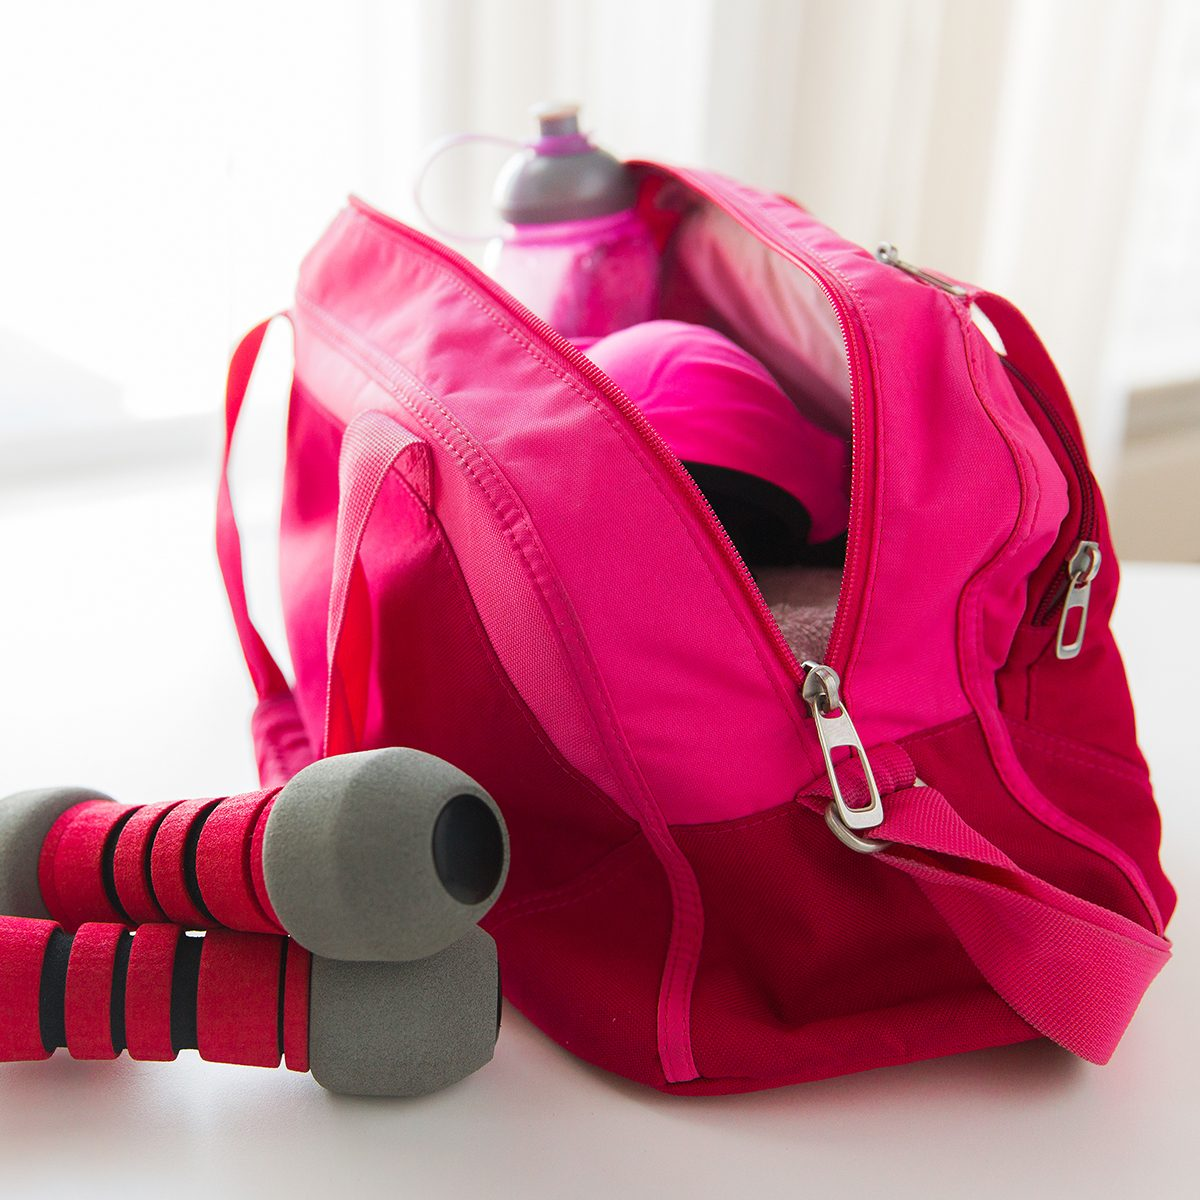 sport, fitness, healthy lifestyle and objects concept - close up of female sports stuff in bag and dumbbells